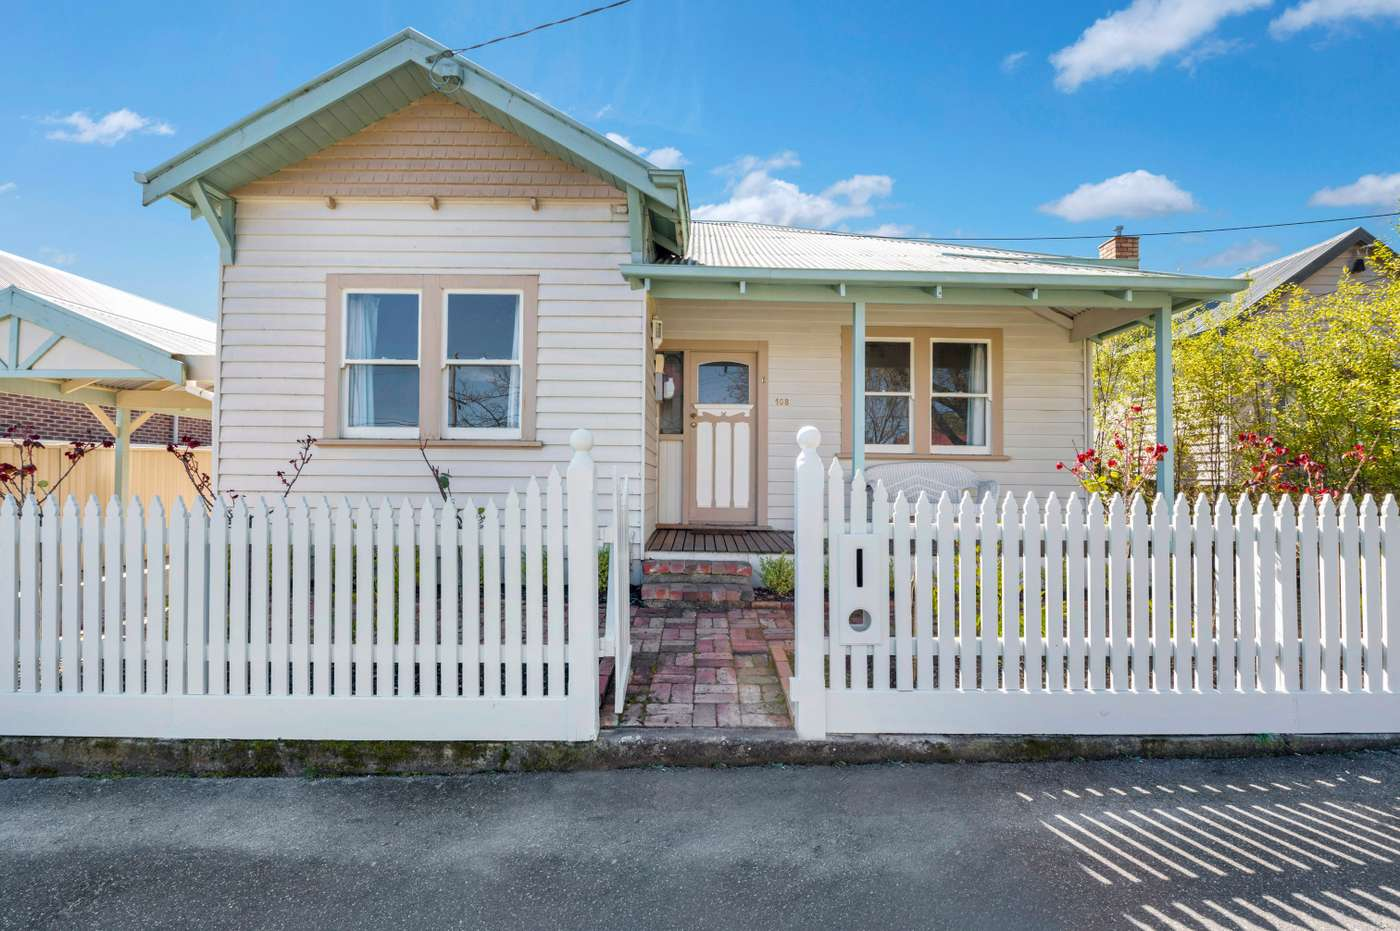 Main view of Homely house listing, 108 Brougham Street, Soldiers Hill, VIC 3350